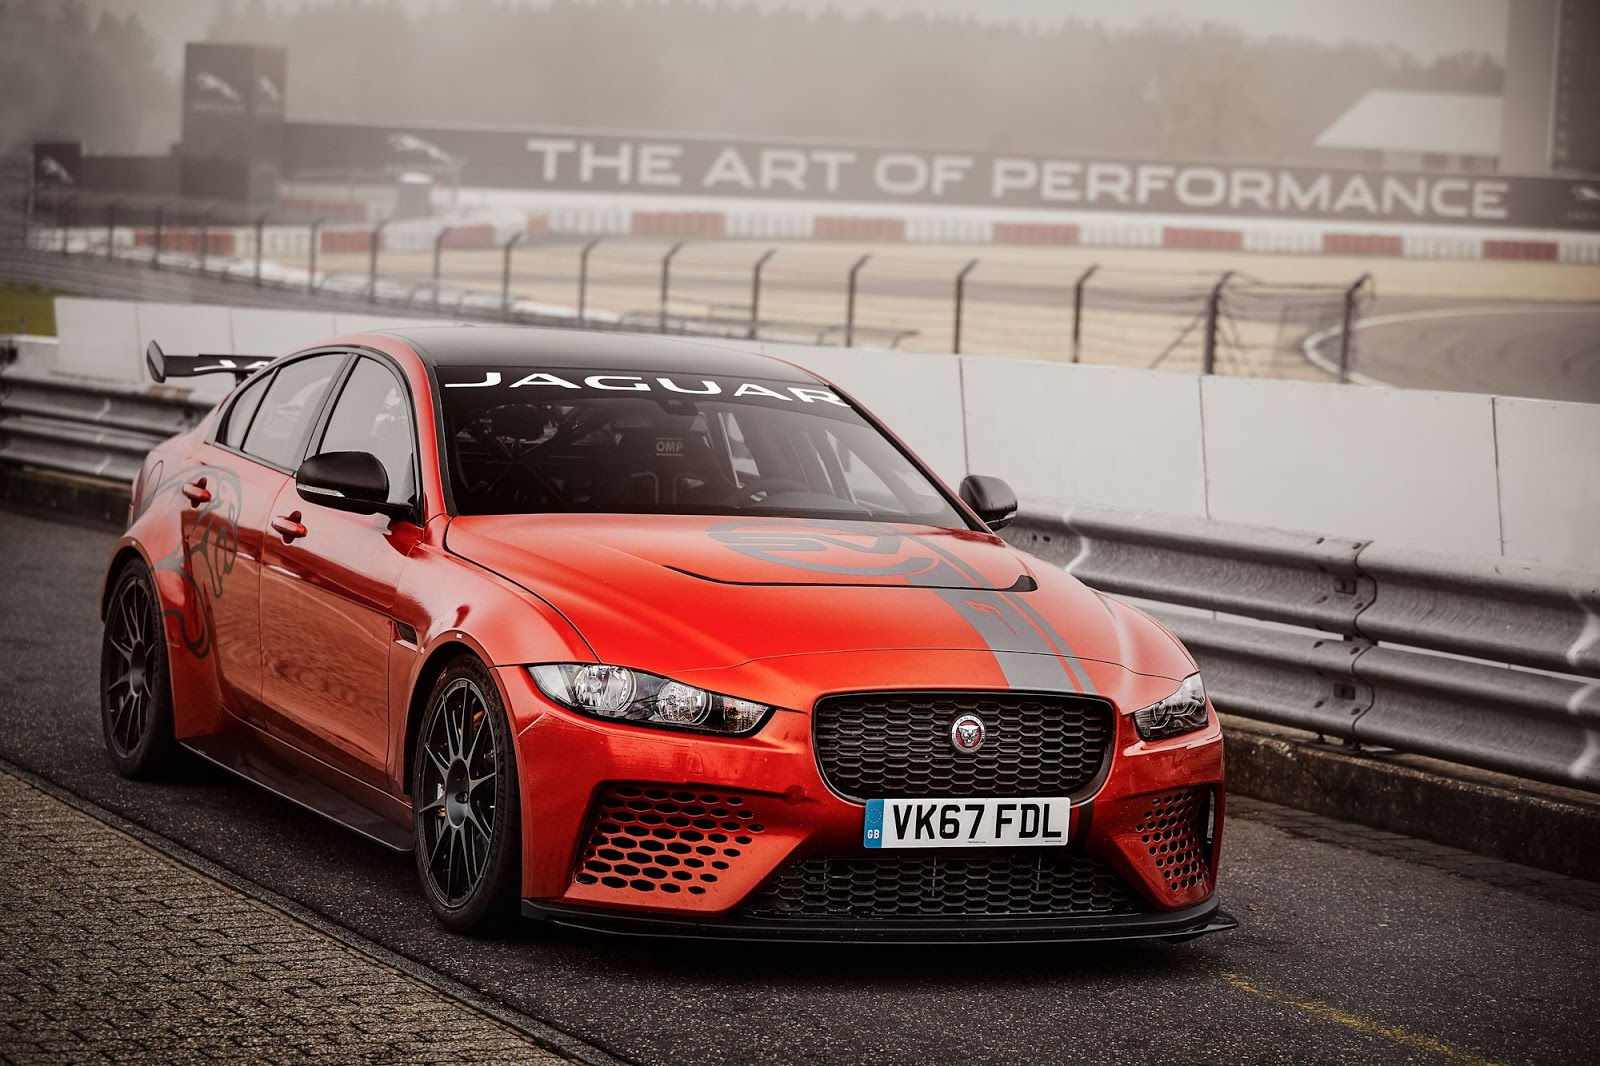 Jaguar Xe Sv Project 8 Jaguar Xe Sv Project 8 Is The Fastest Sedan Around The